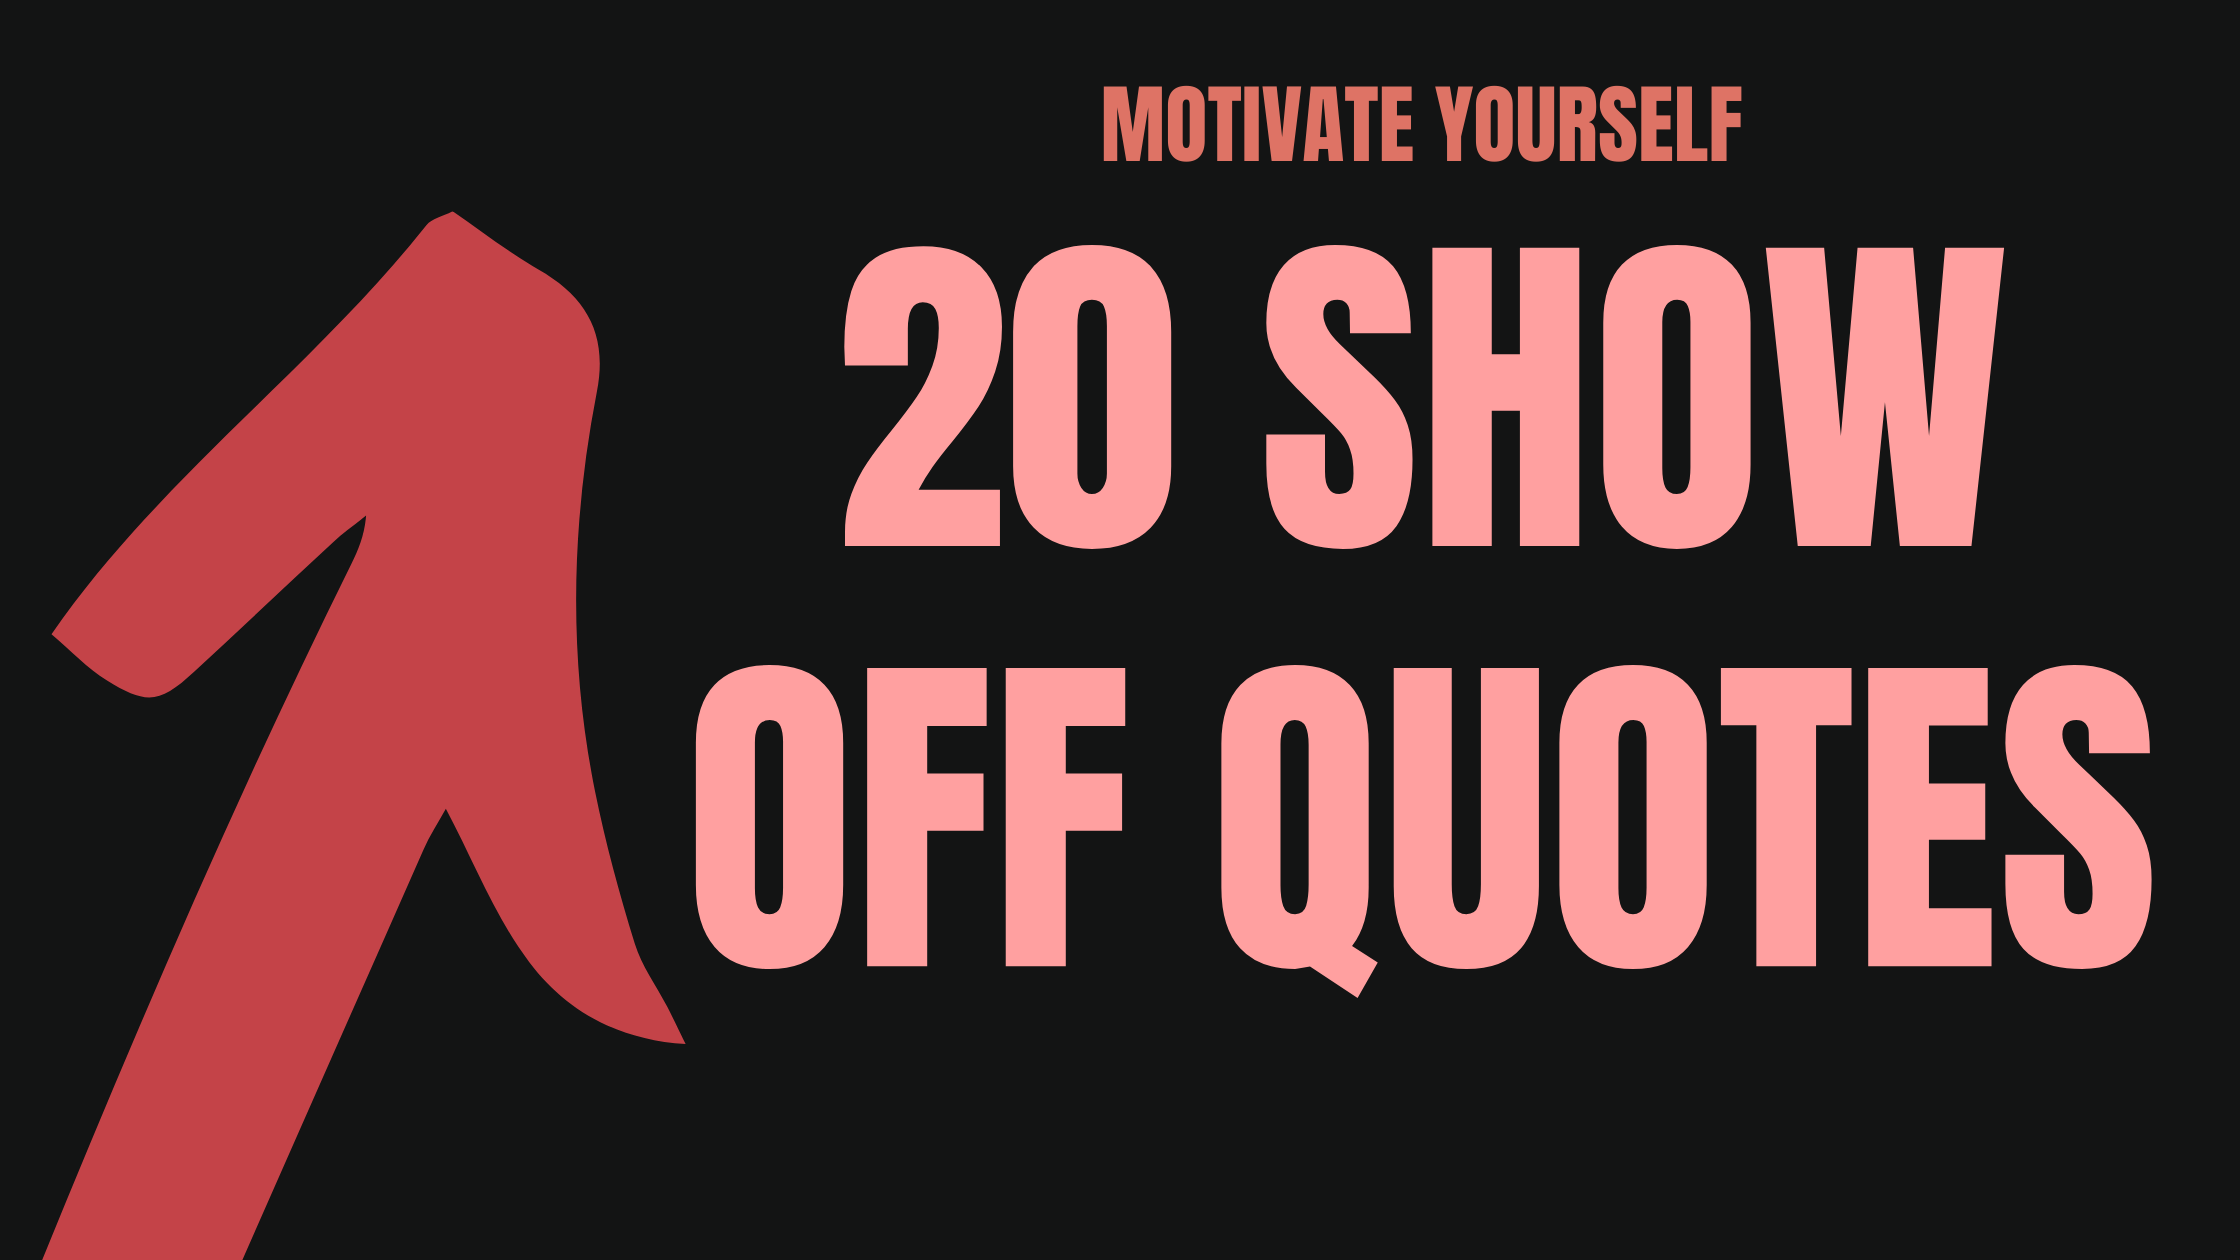 20 Wonderful Show Off Quotes And Notes. Number 16 is Absolutely Stunning.